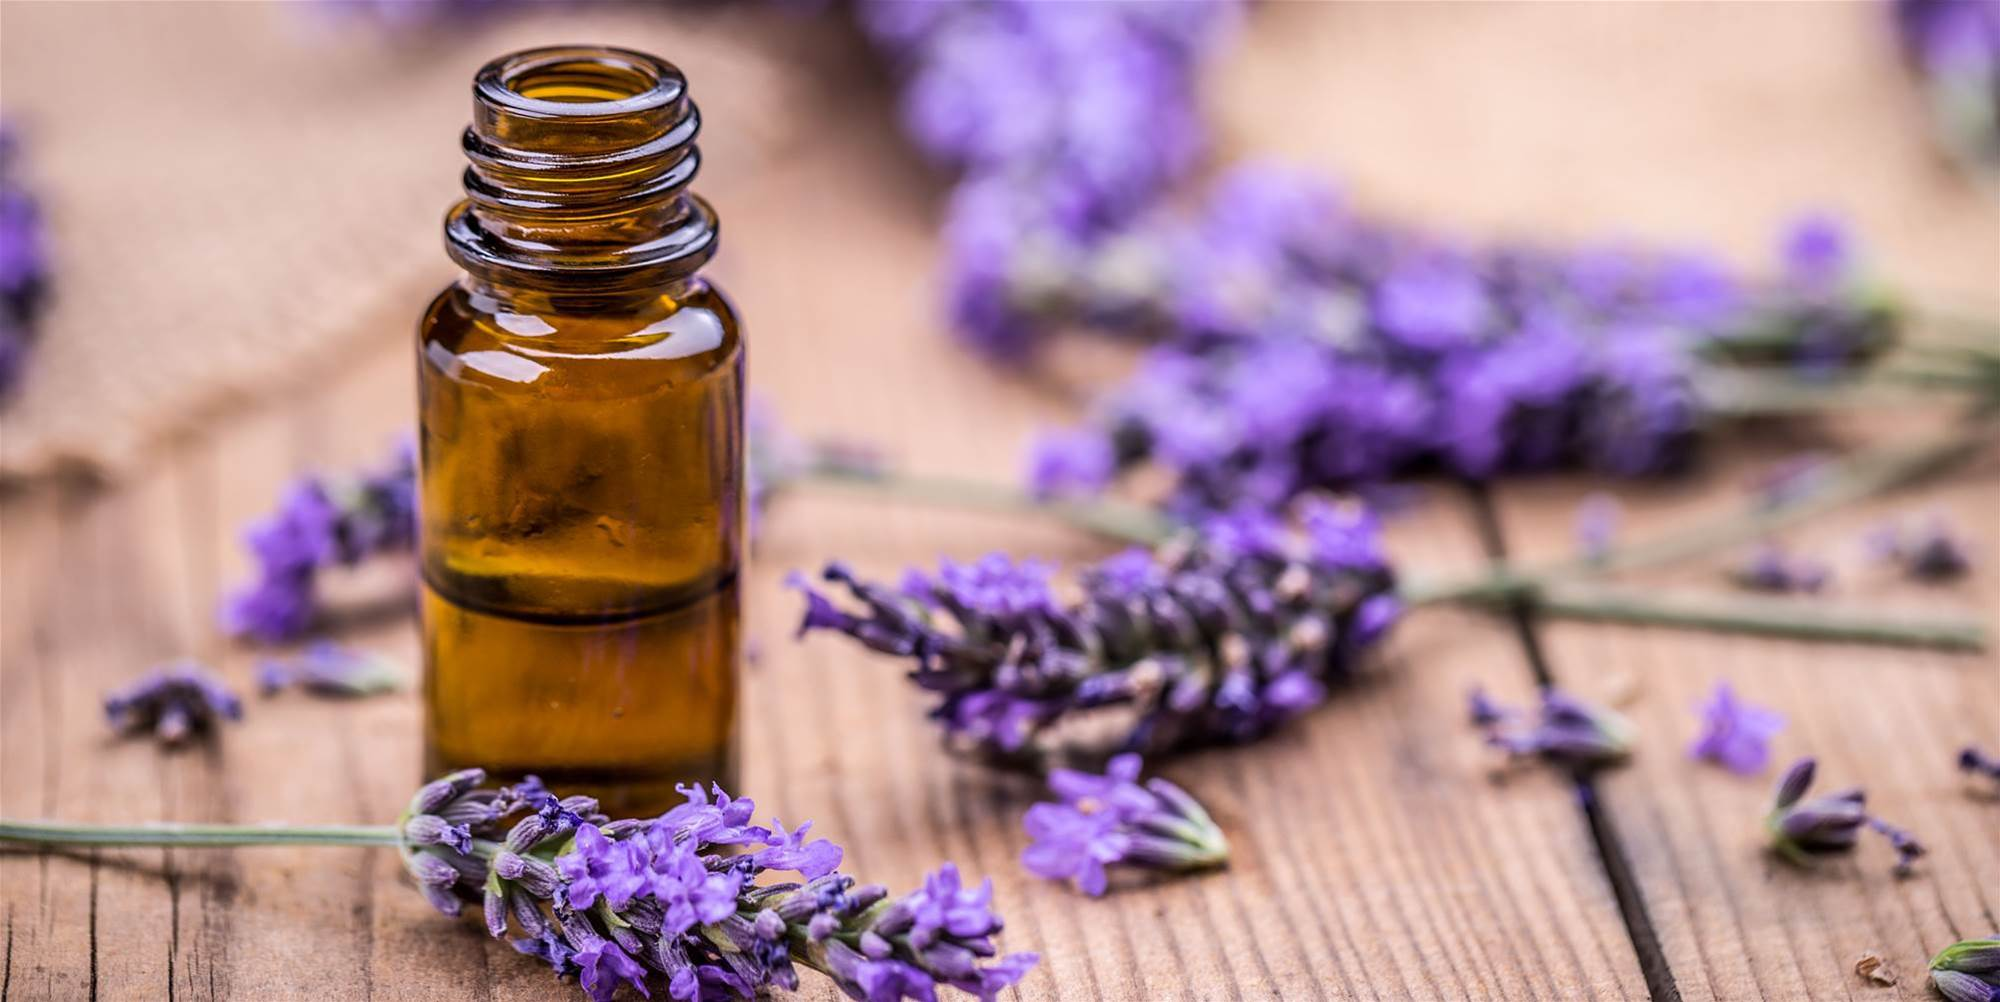 These 7 Essential Oils May Help Treat Your Health Conditions